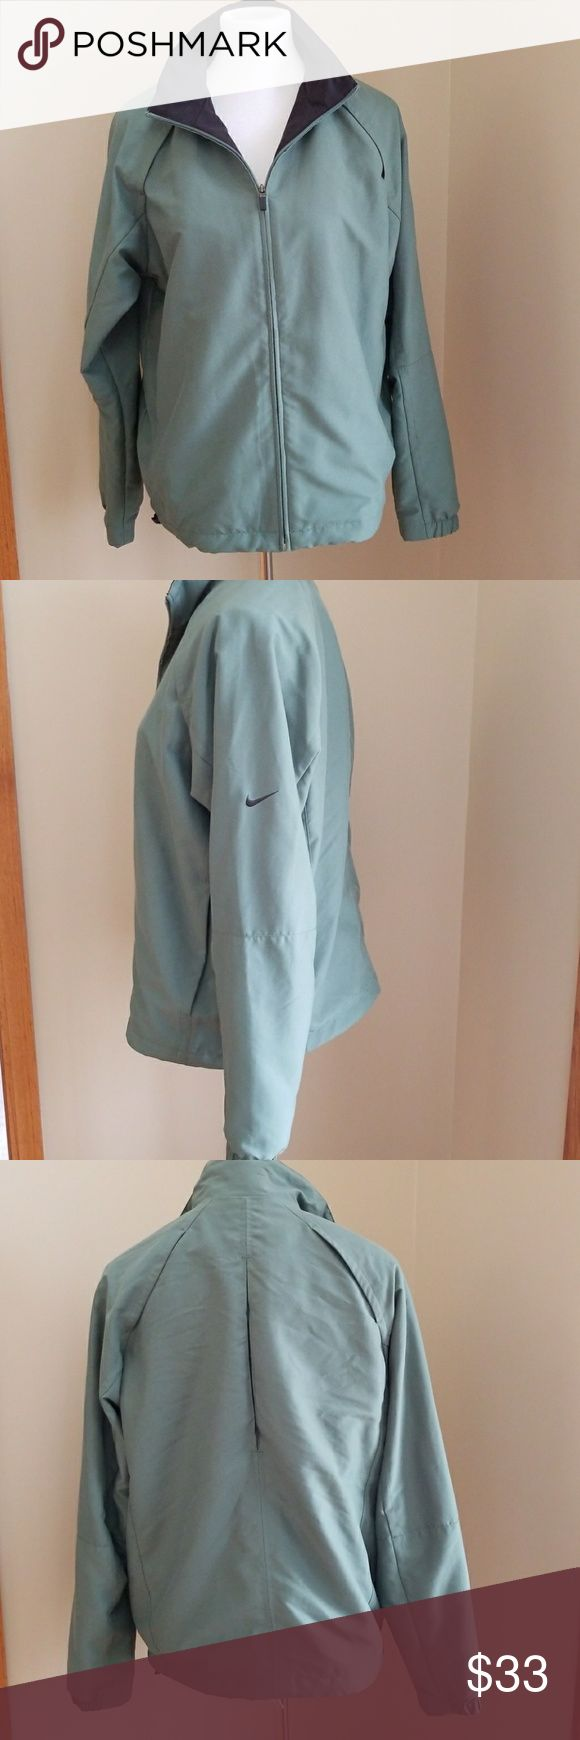 Nike Golf Jacket Size Small Nike Golf Jacket Size Small Worn twice. Near excellent condition. Nike Jackets & Coats